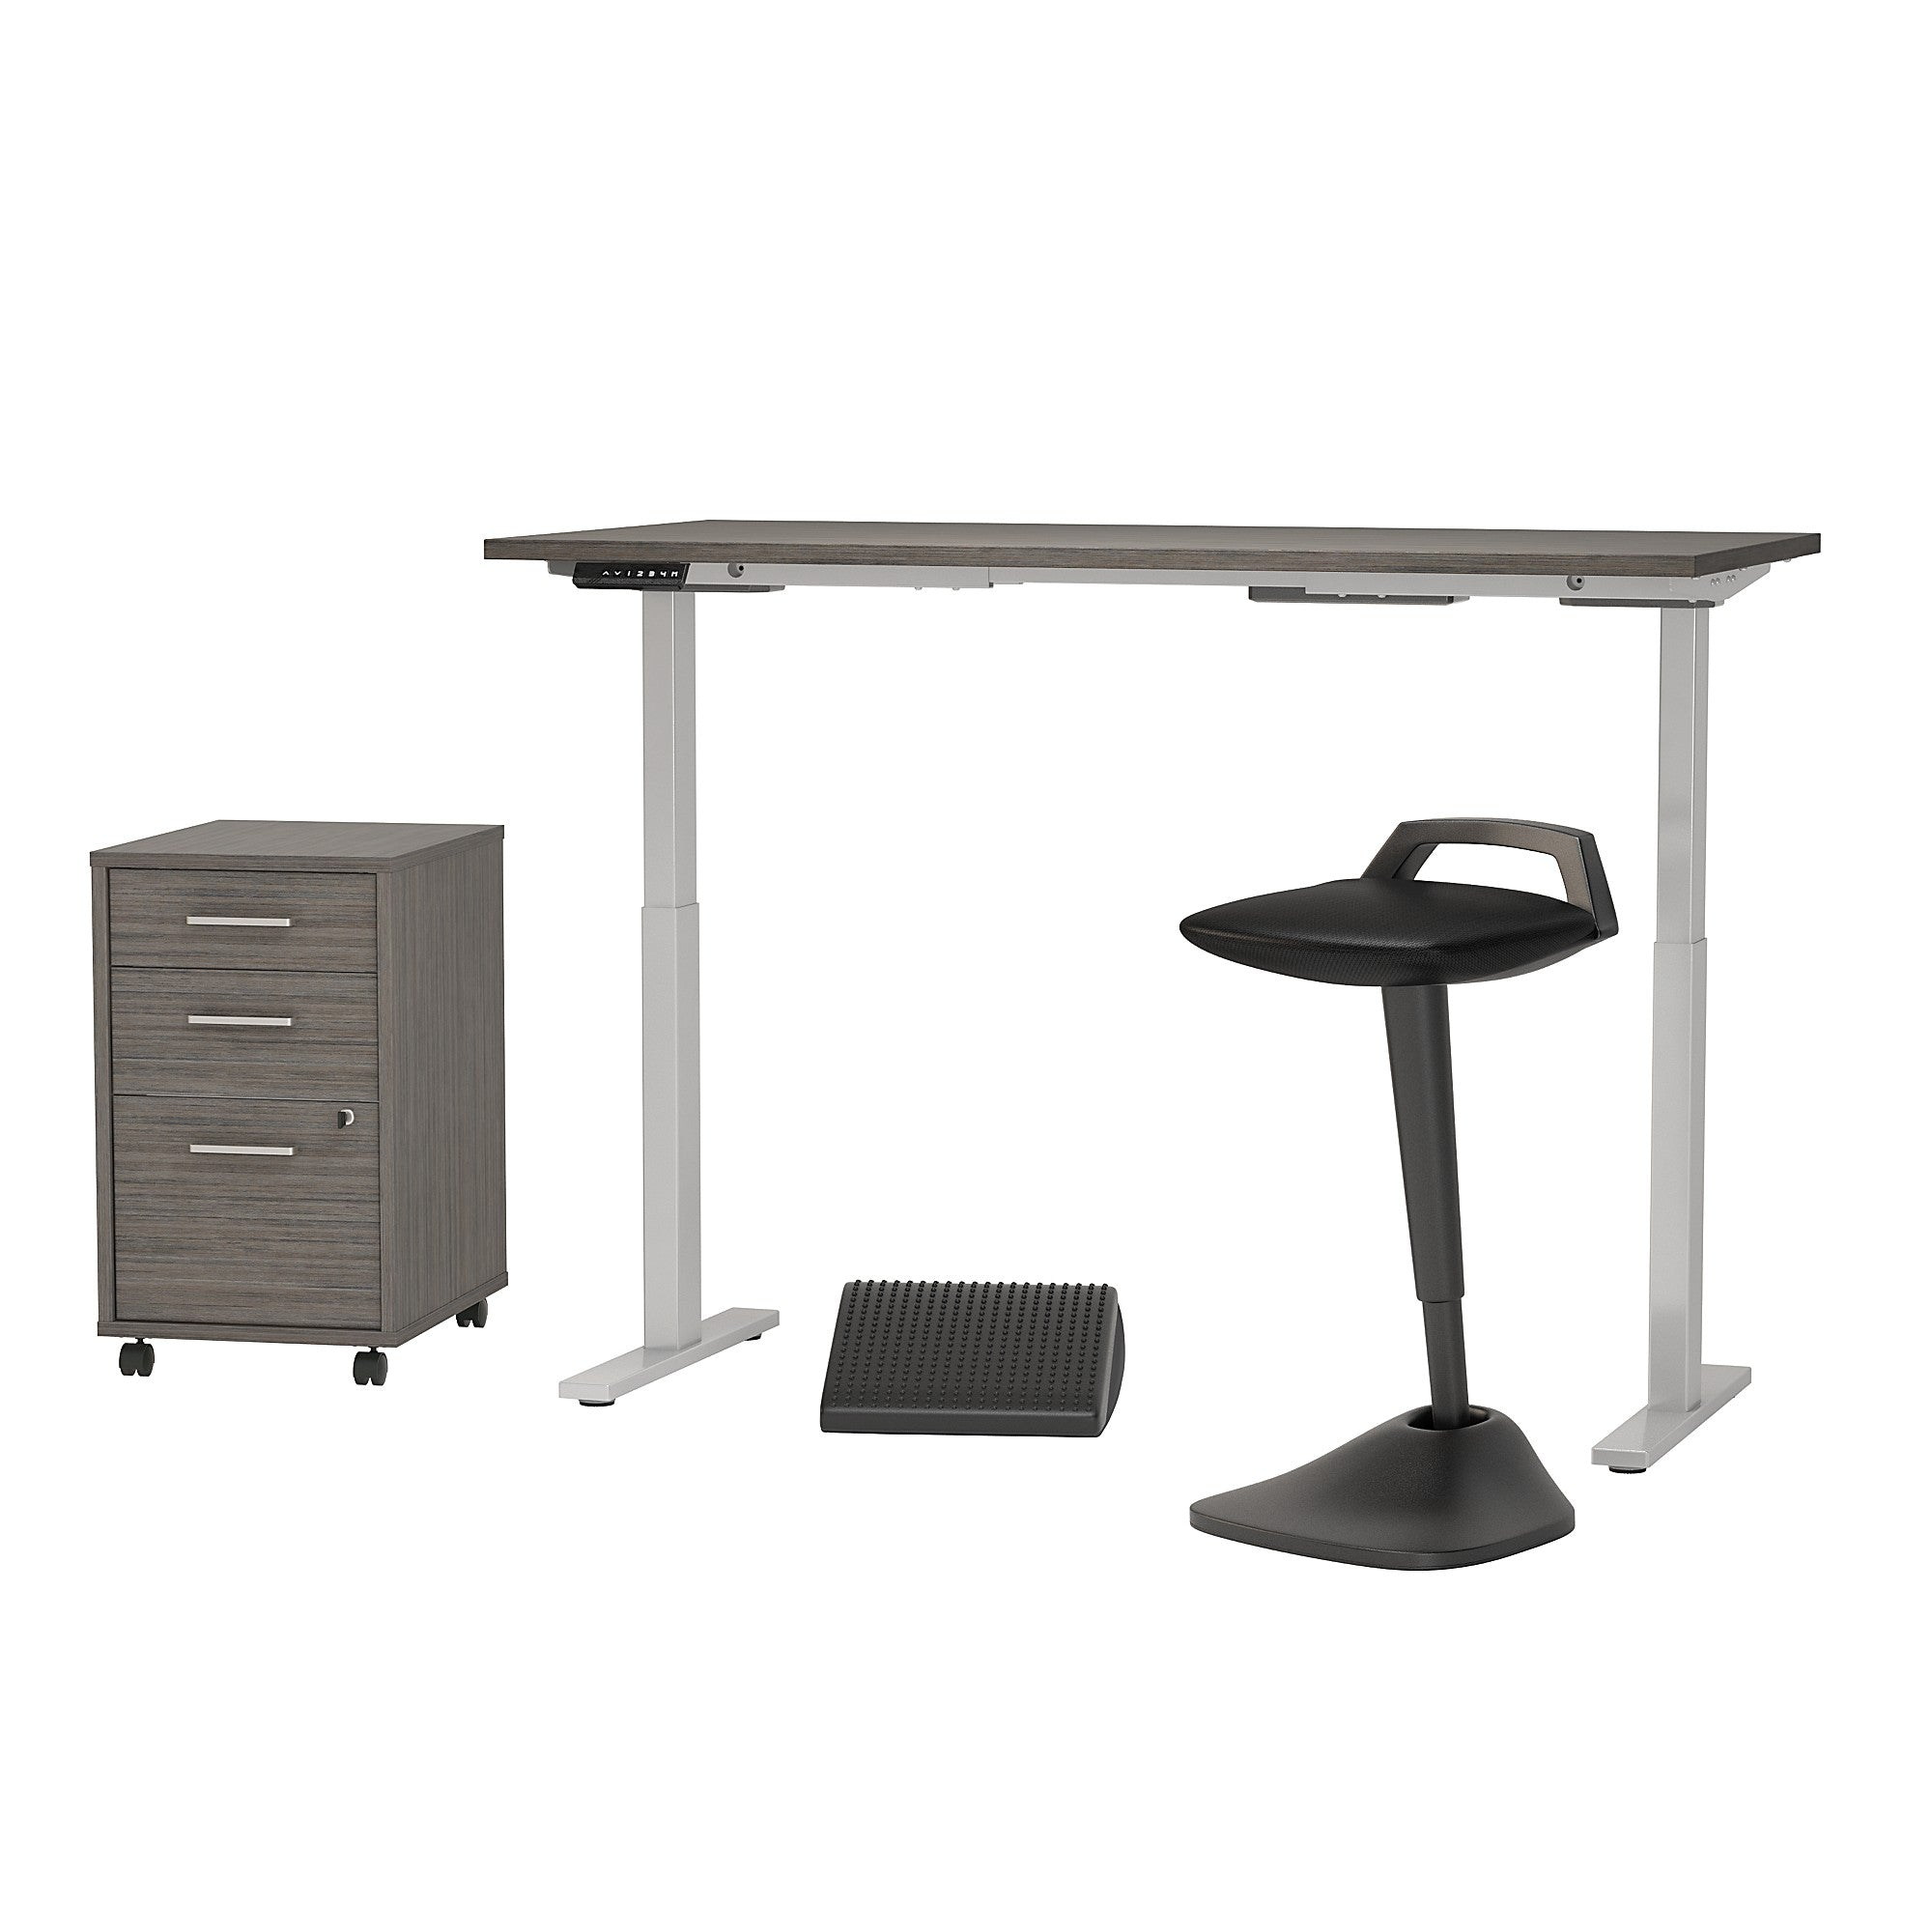 Adjustable Standing Desk w/ Lean Stool Storage & Ergonomic Accessories